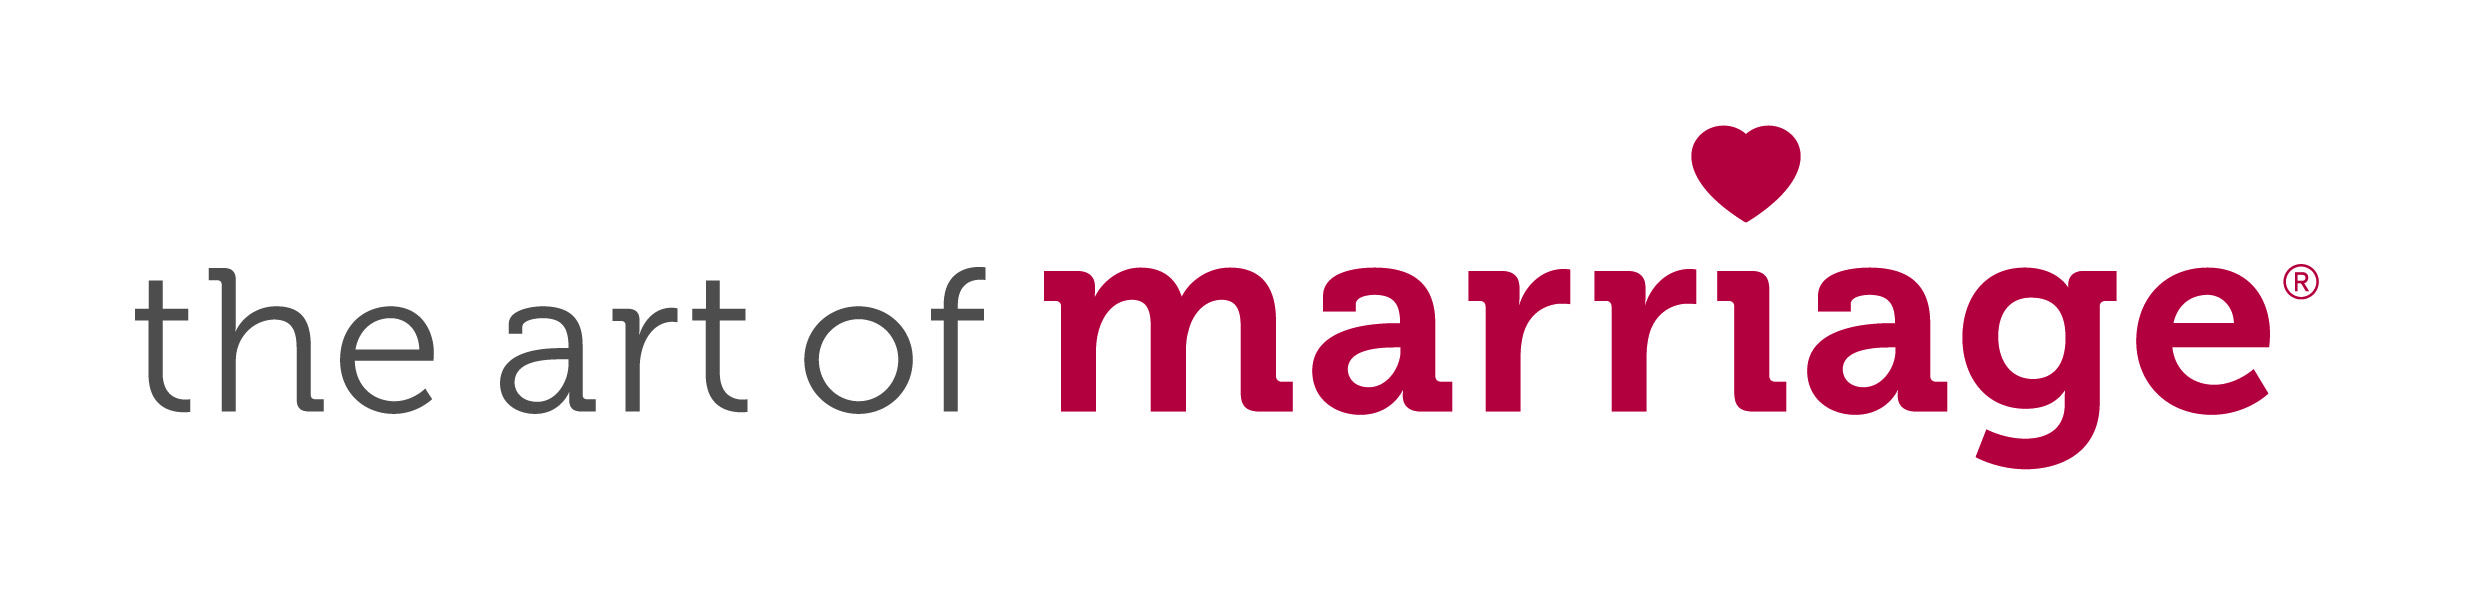 The Art of Marriage logo